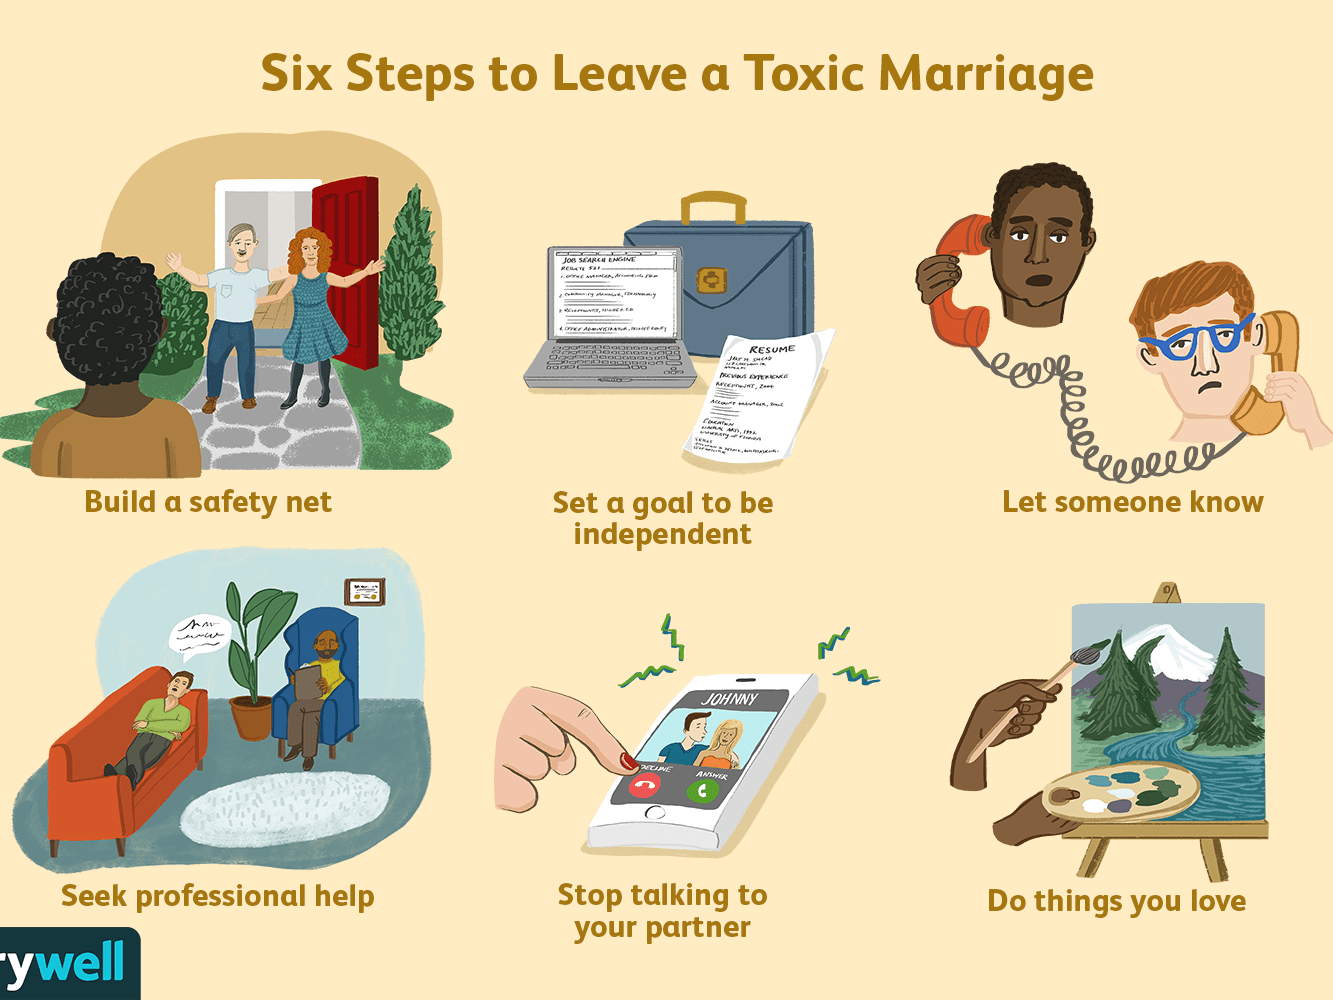 How to Leave a Toxic Marriage